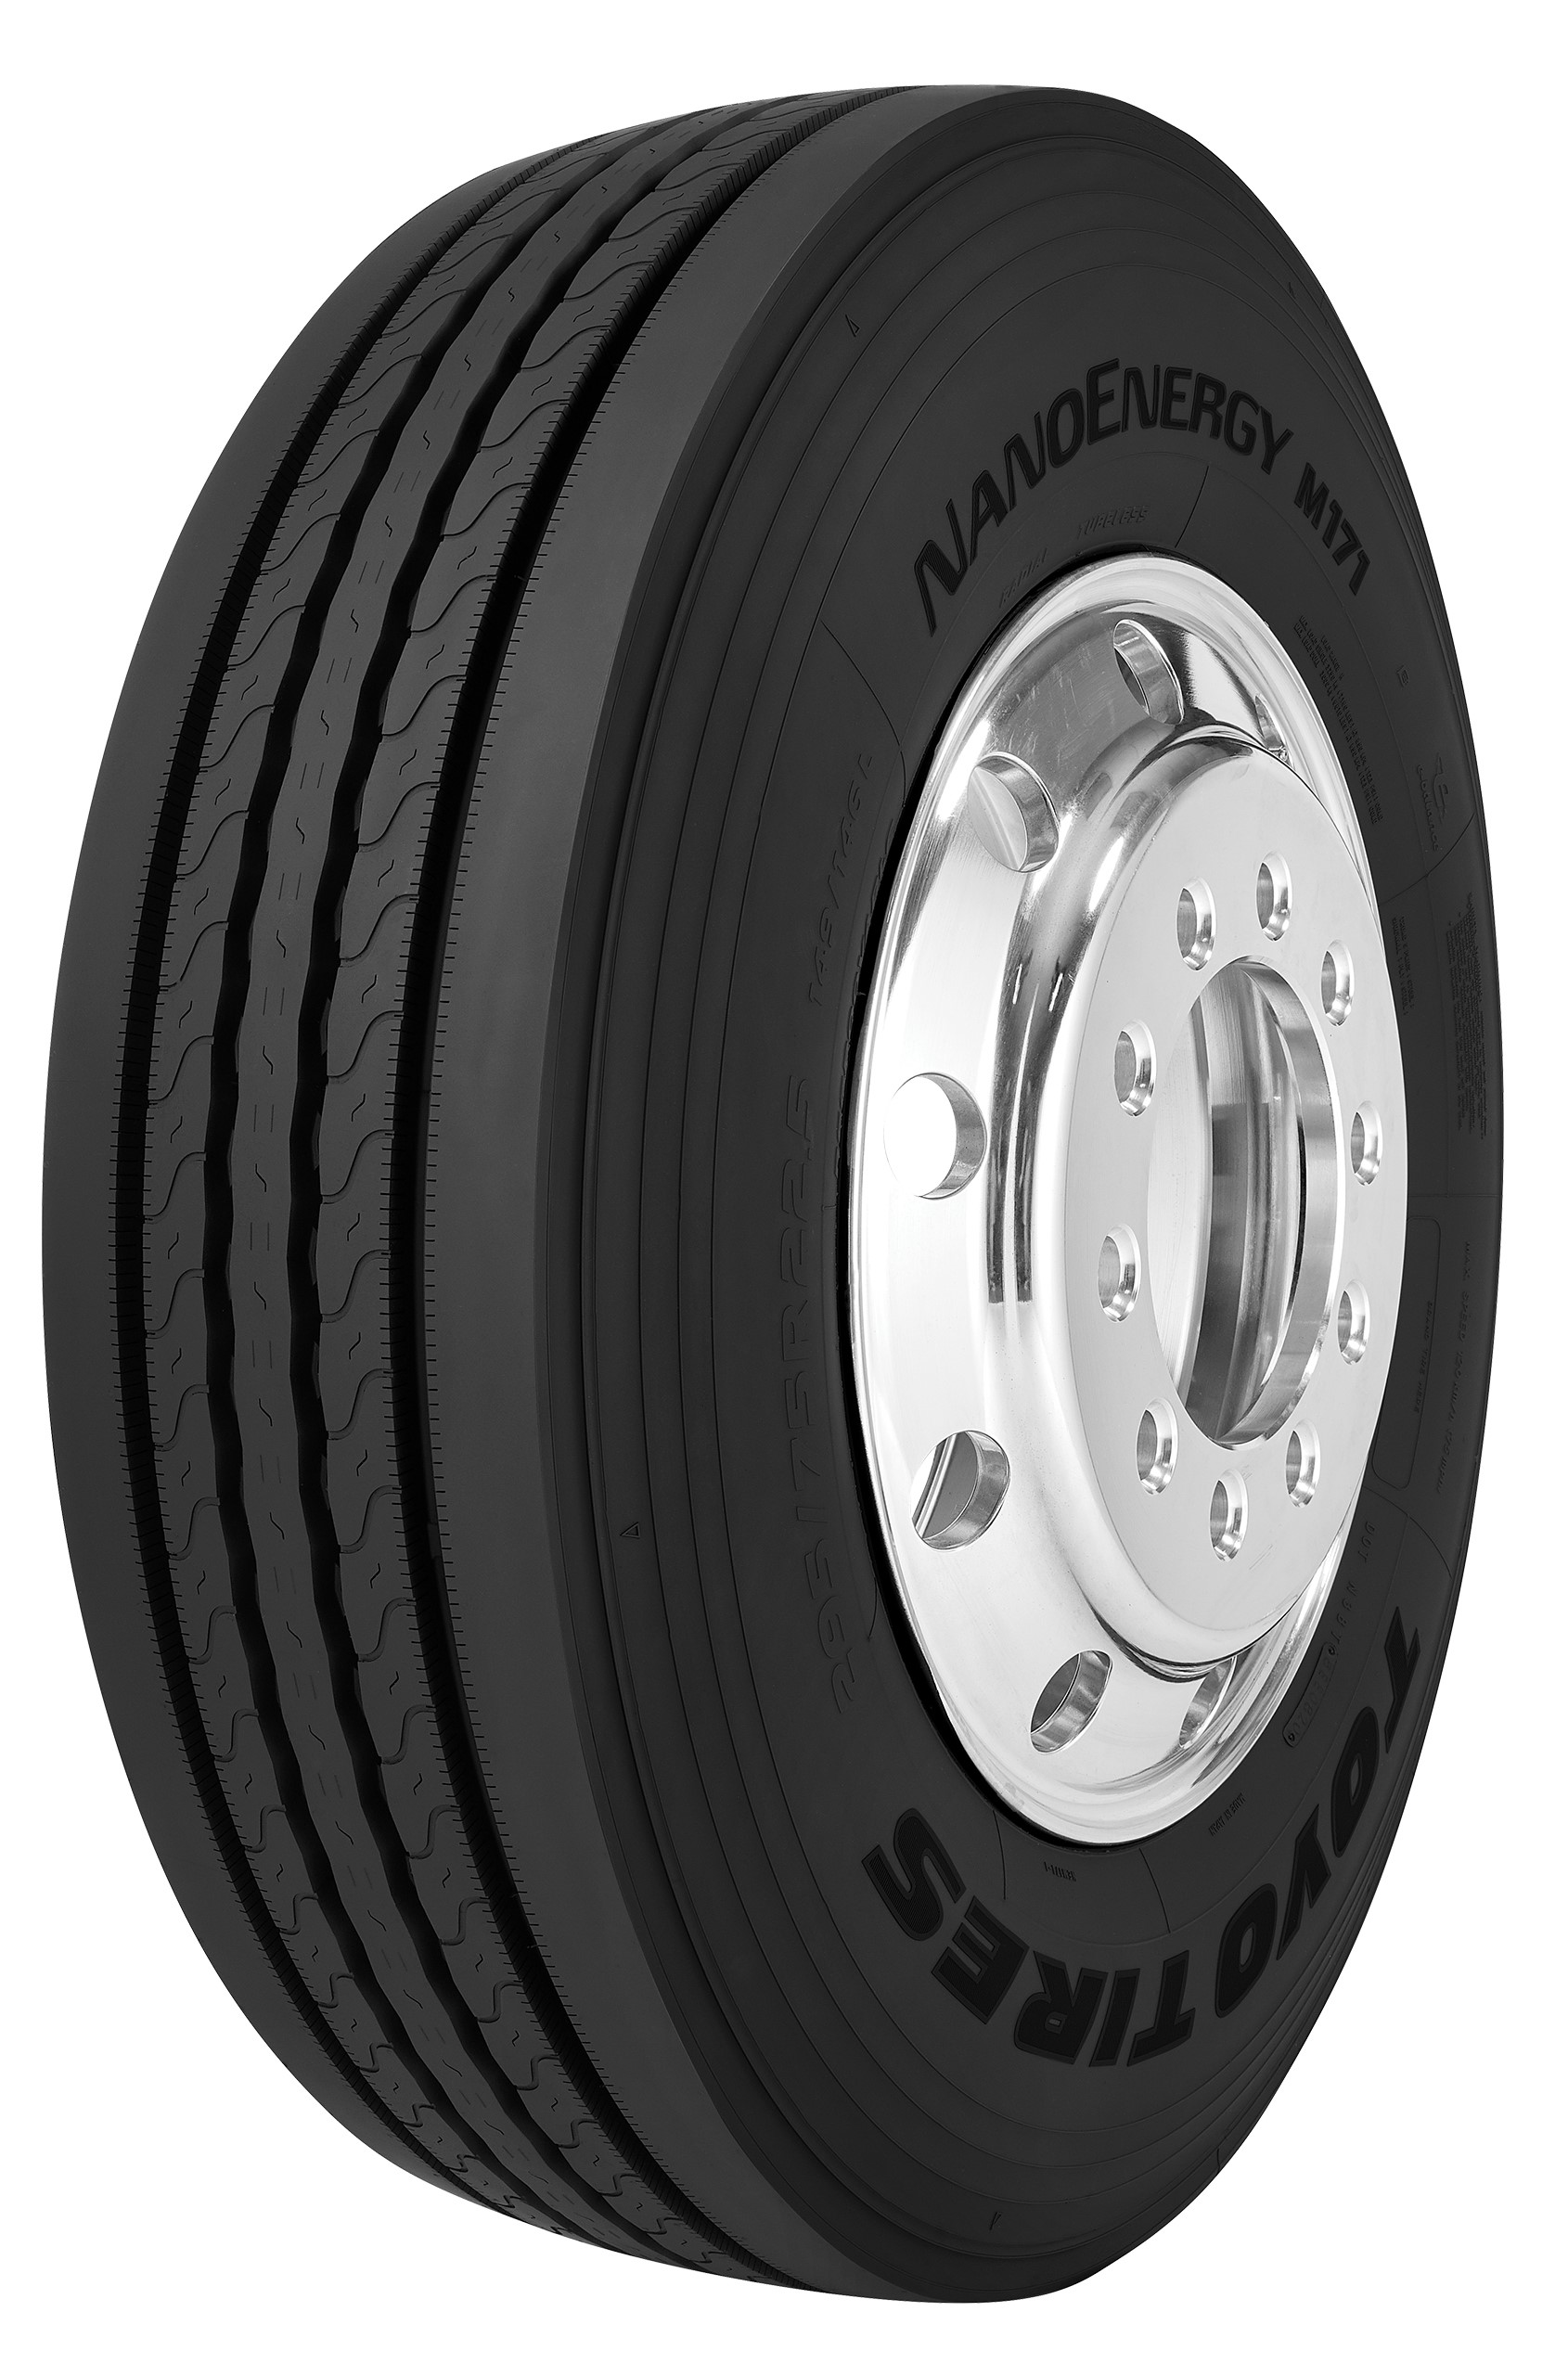 Toyo Adds Super-Regional All-Position Truck Tire